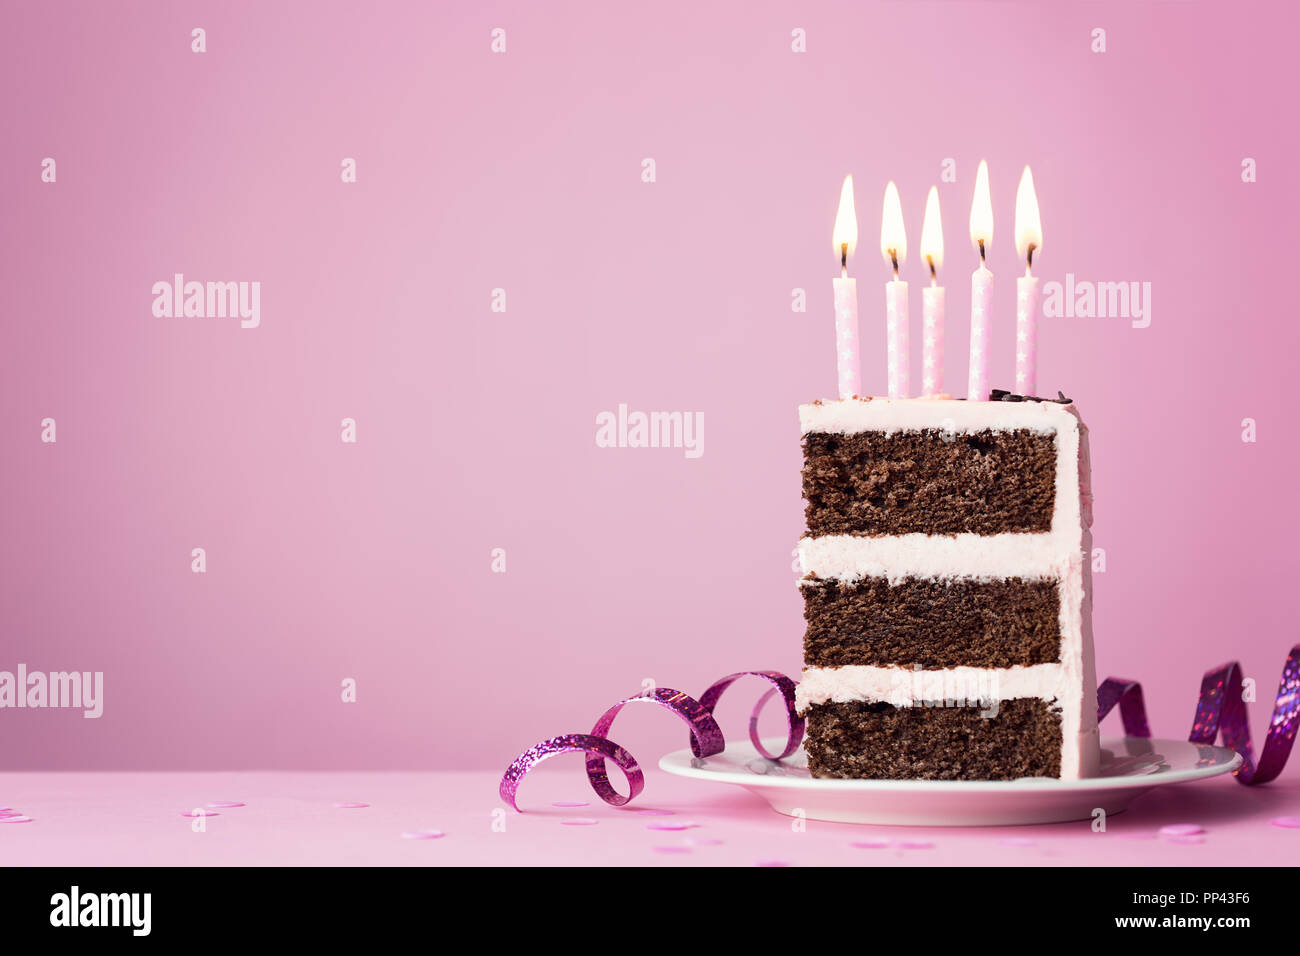 Chocolate Birthday Cake With Pink Frosting And Candles Stock Photo